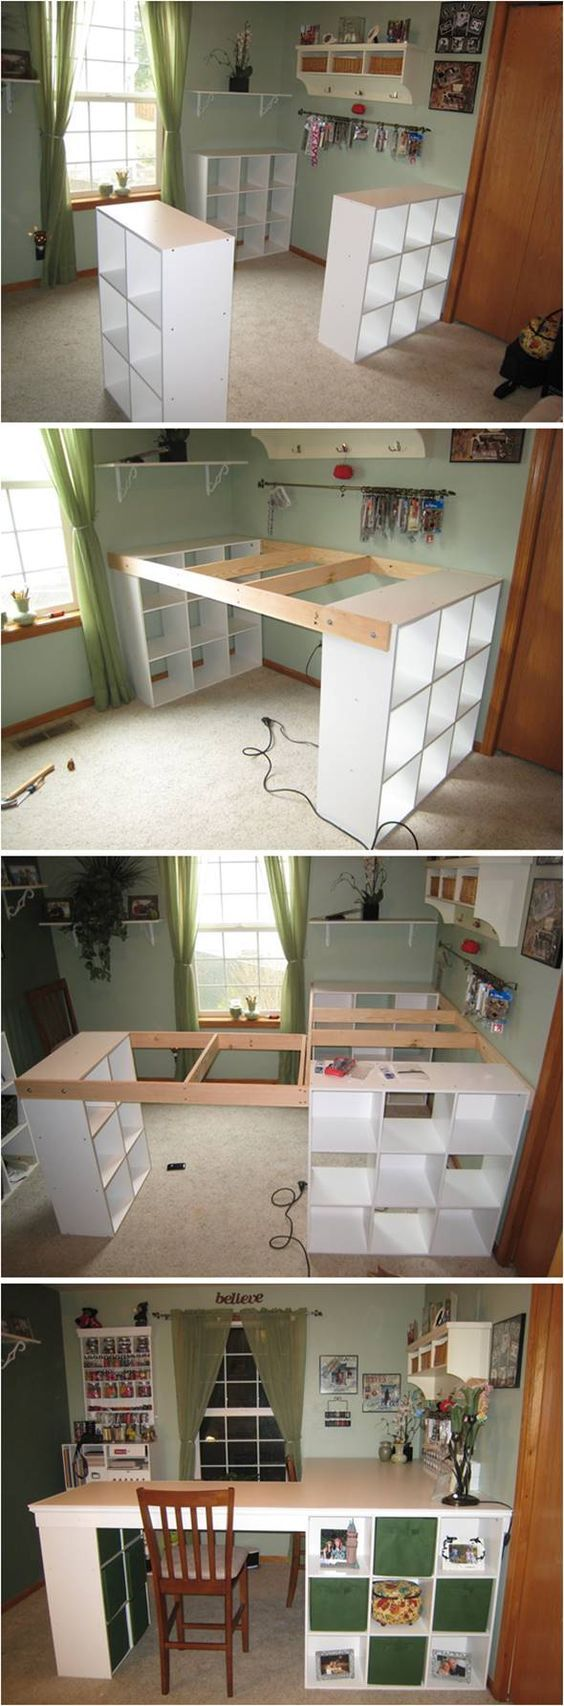 Creative Ideas Diy Customized Craft Desk I Am Always A Fan Of L Shaped Layouts For Desks And Work Spaces Ikea Craft Room Craft Room Desk Craft Room Tables